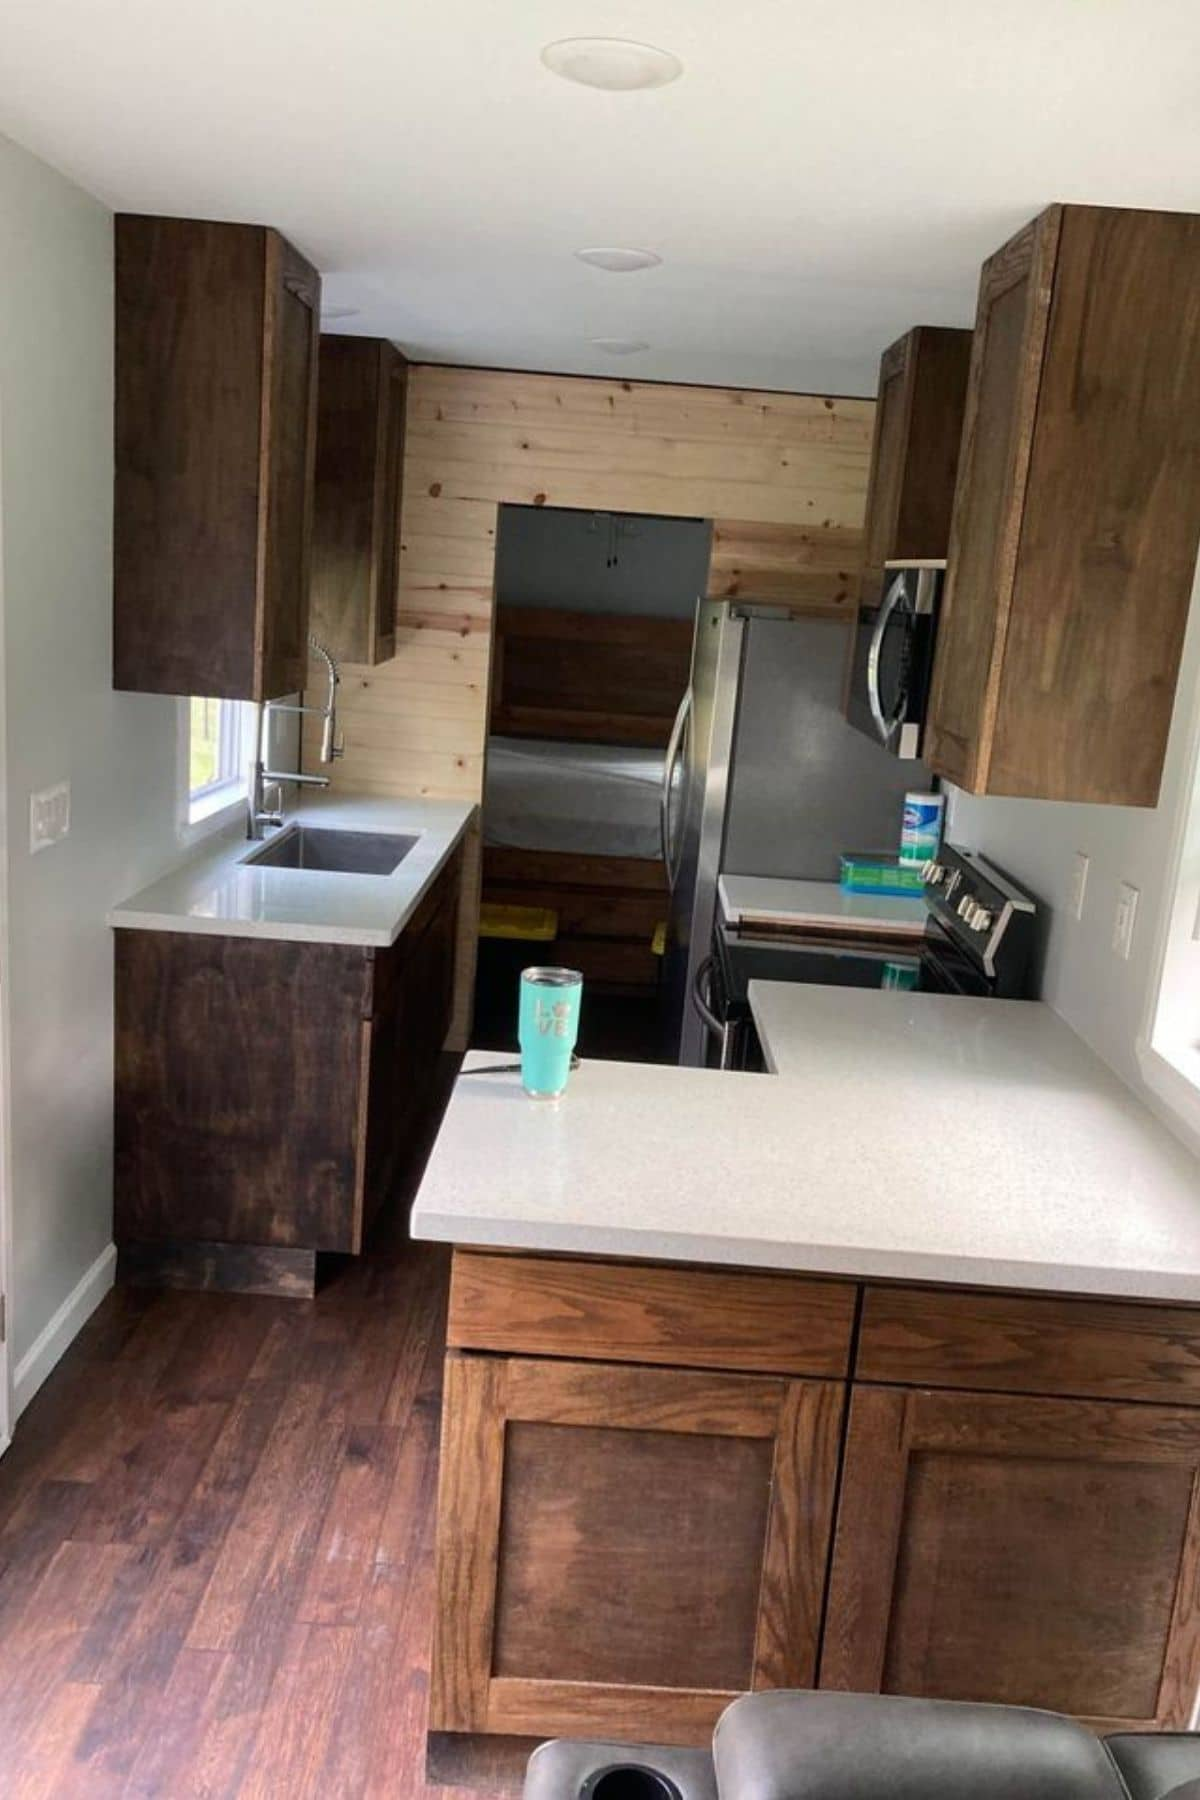 Wooden kitchen cabinets with white countertops